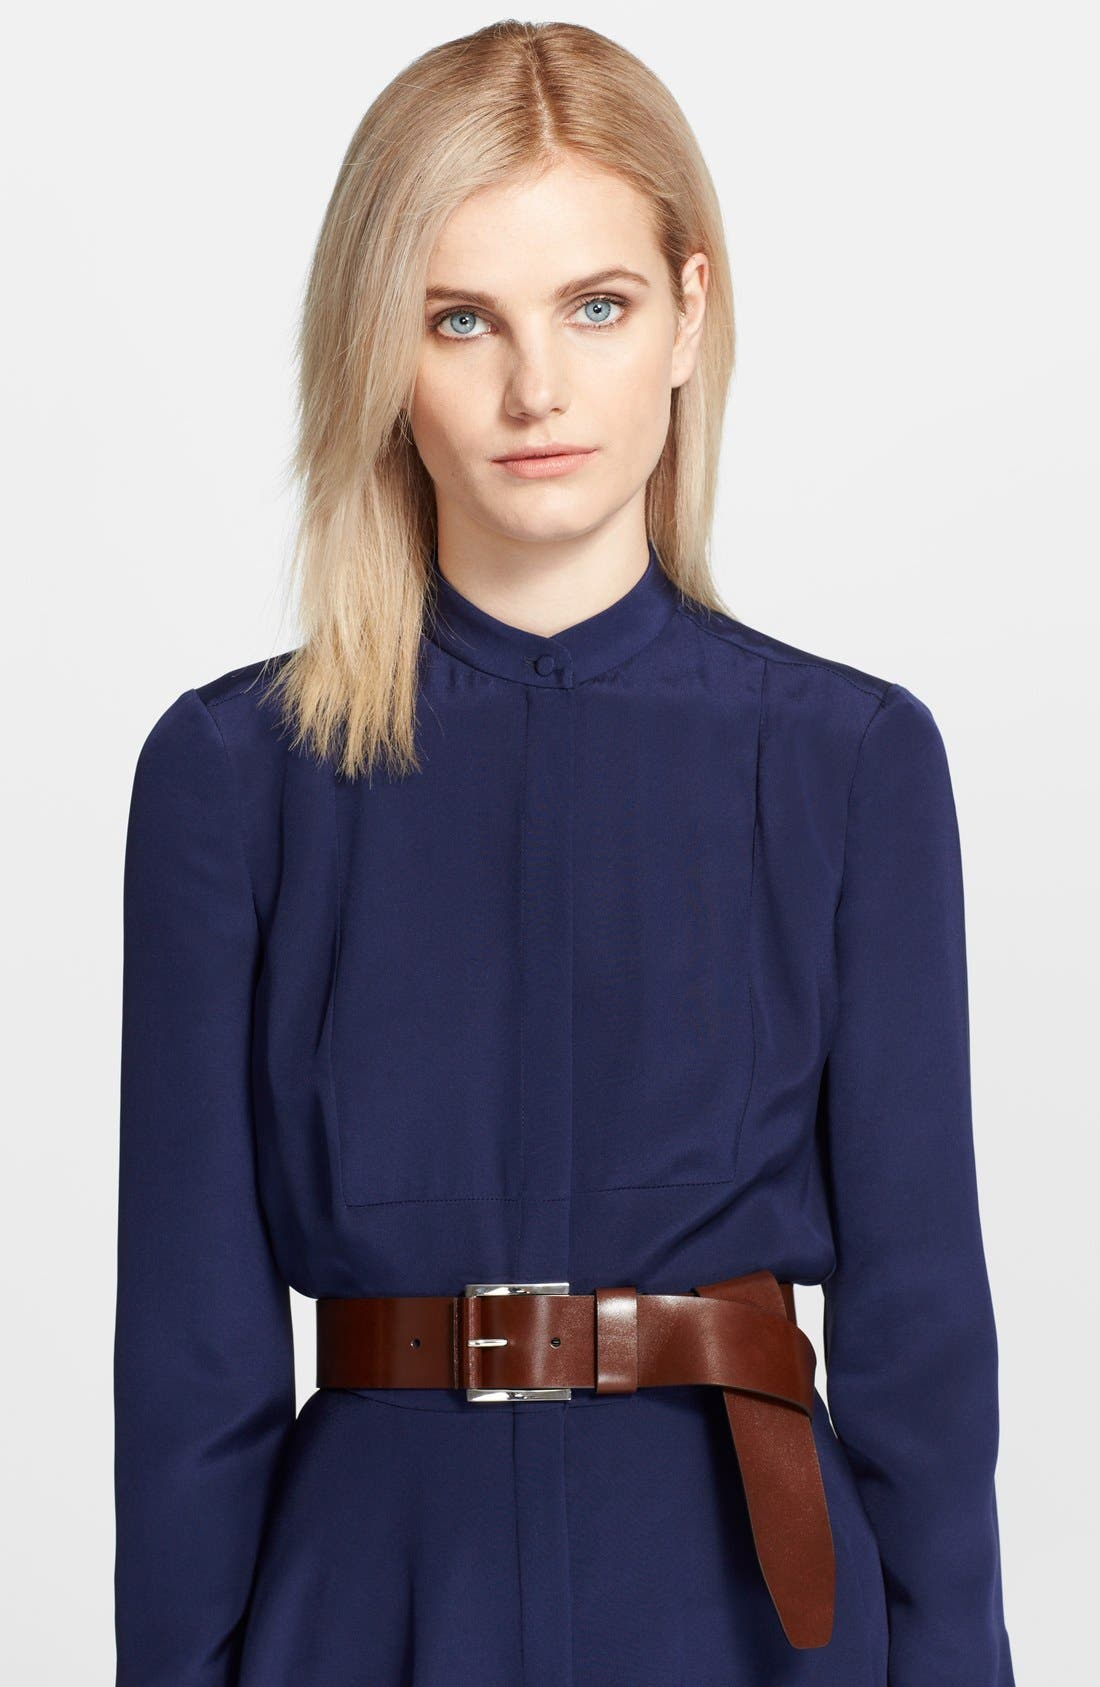 Alternate Image 1 Selected - Michael Kors Flip Tie Leather Belt